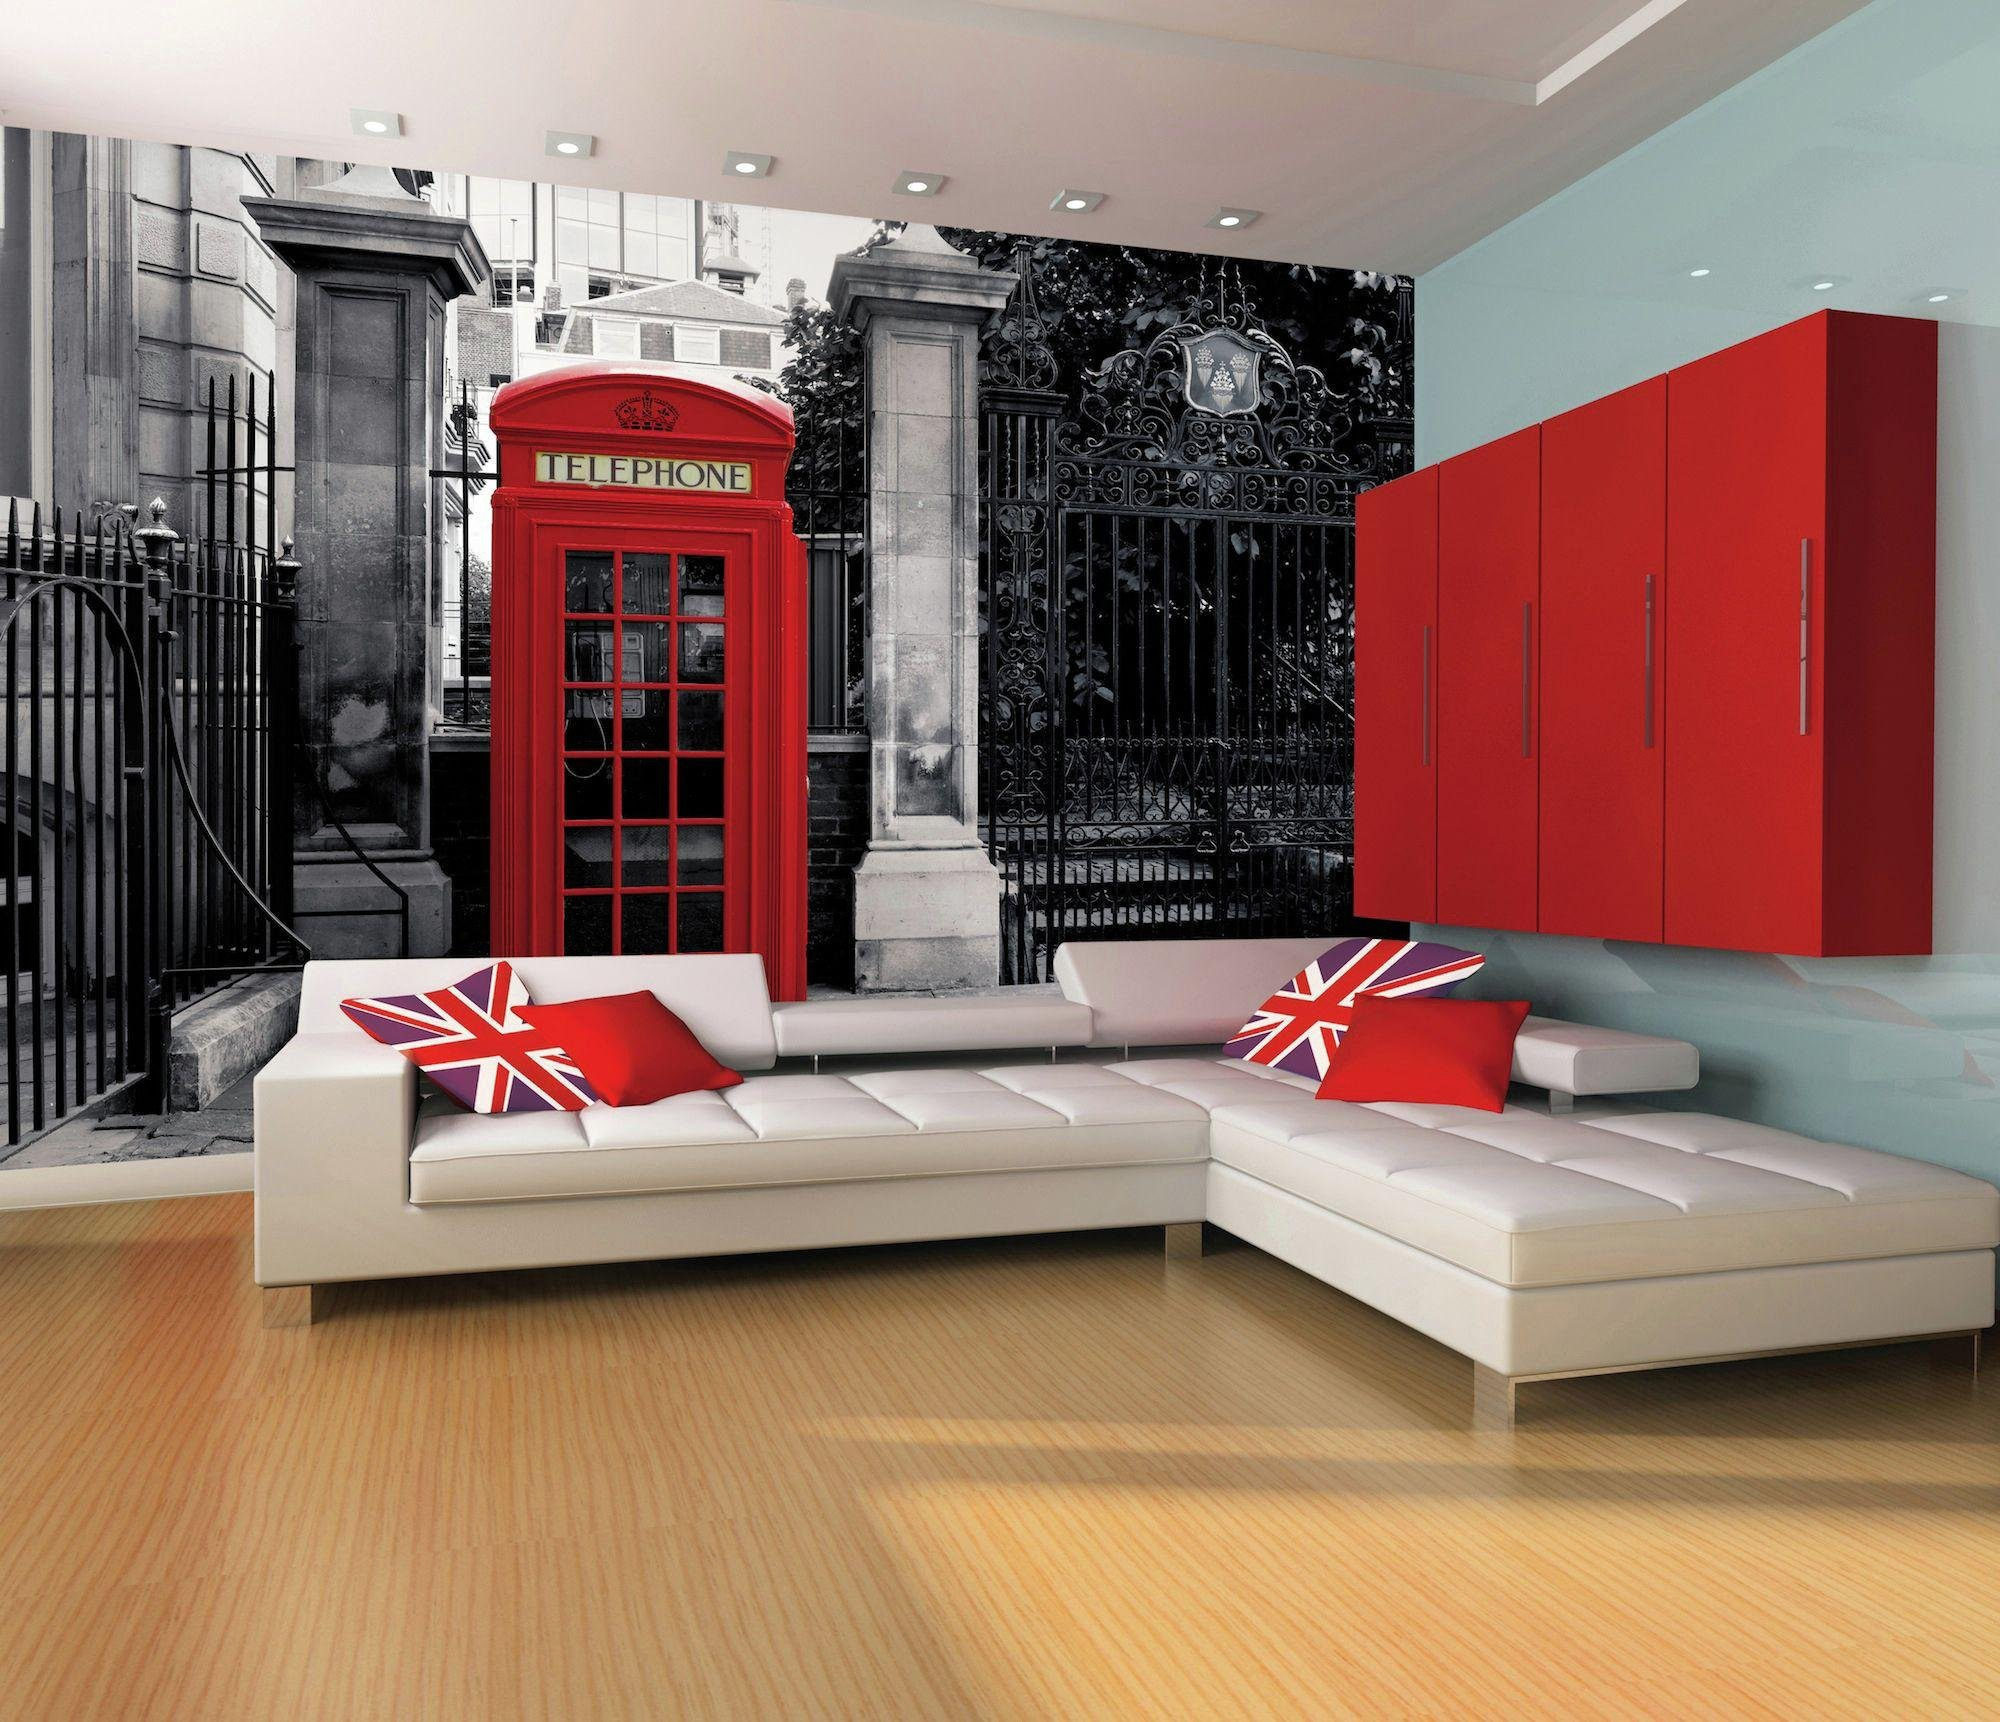 1wall  london telephone box  wallpaper mural